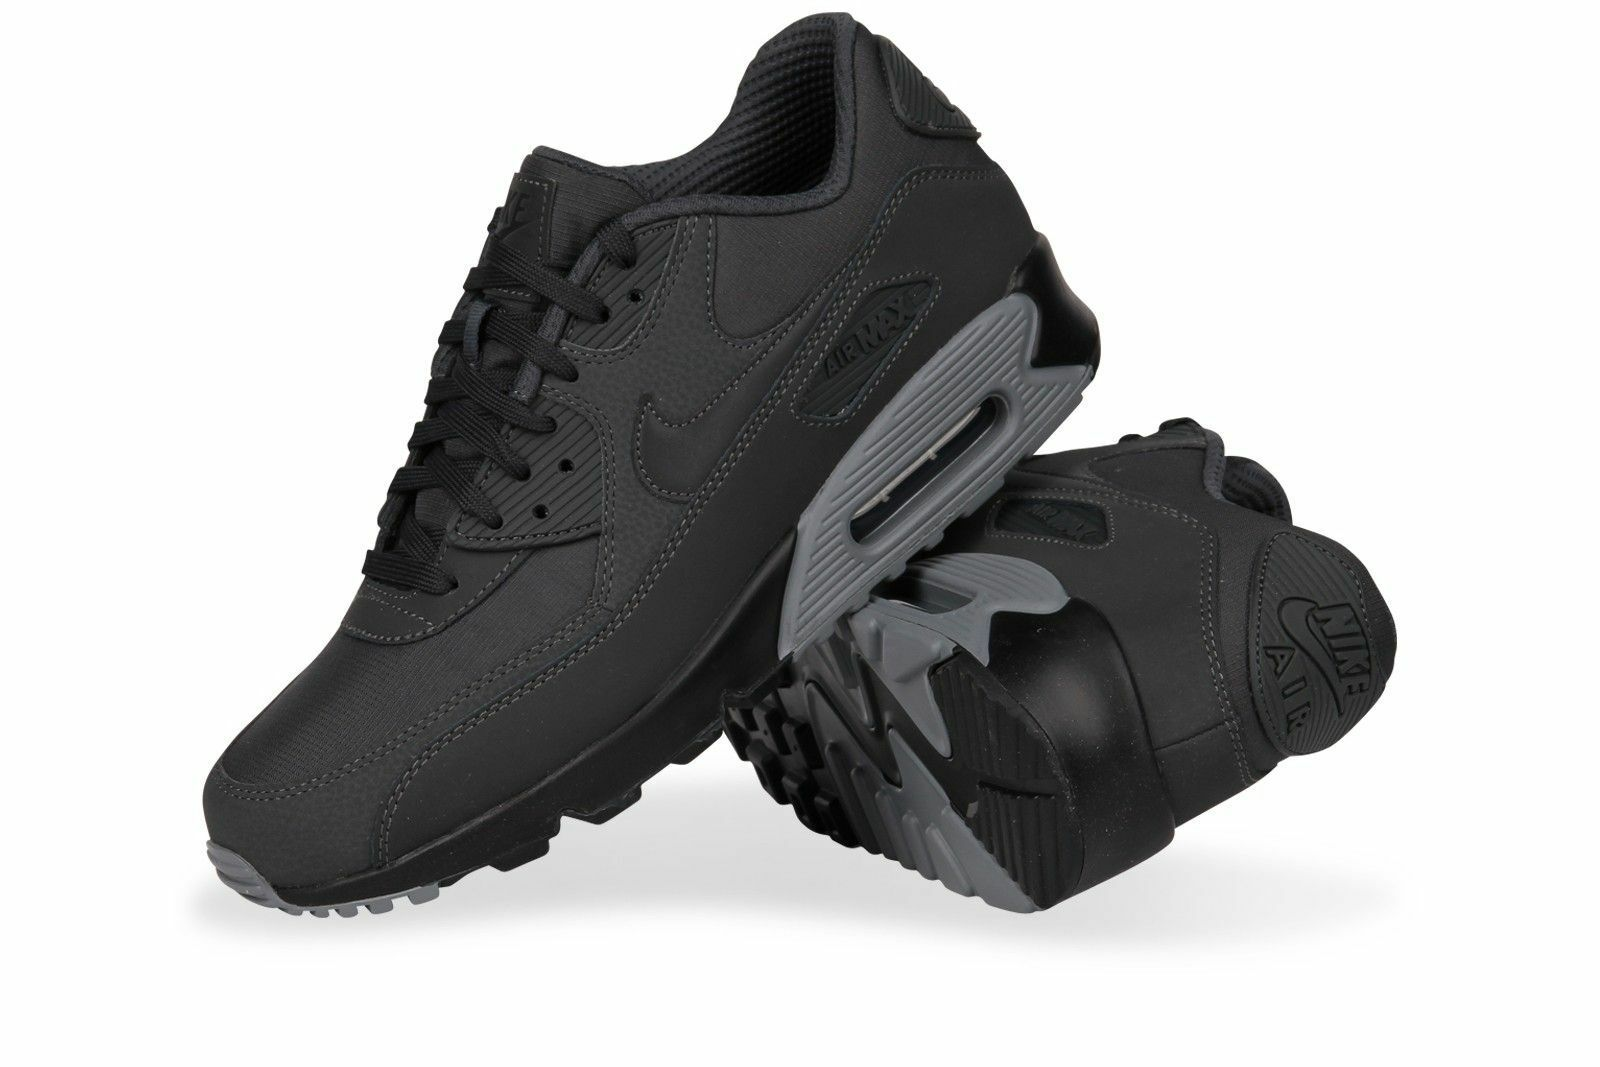 2016 AIR MAX 90 ANTHRACITE COOL GREY sz 11.5 BRAND NEW SUPER RARE